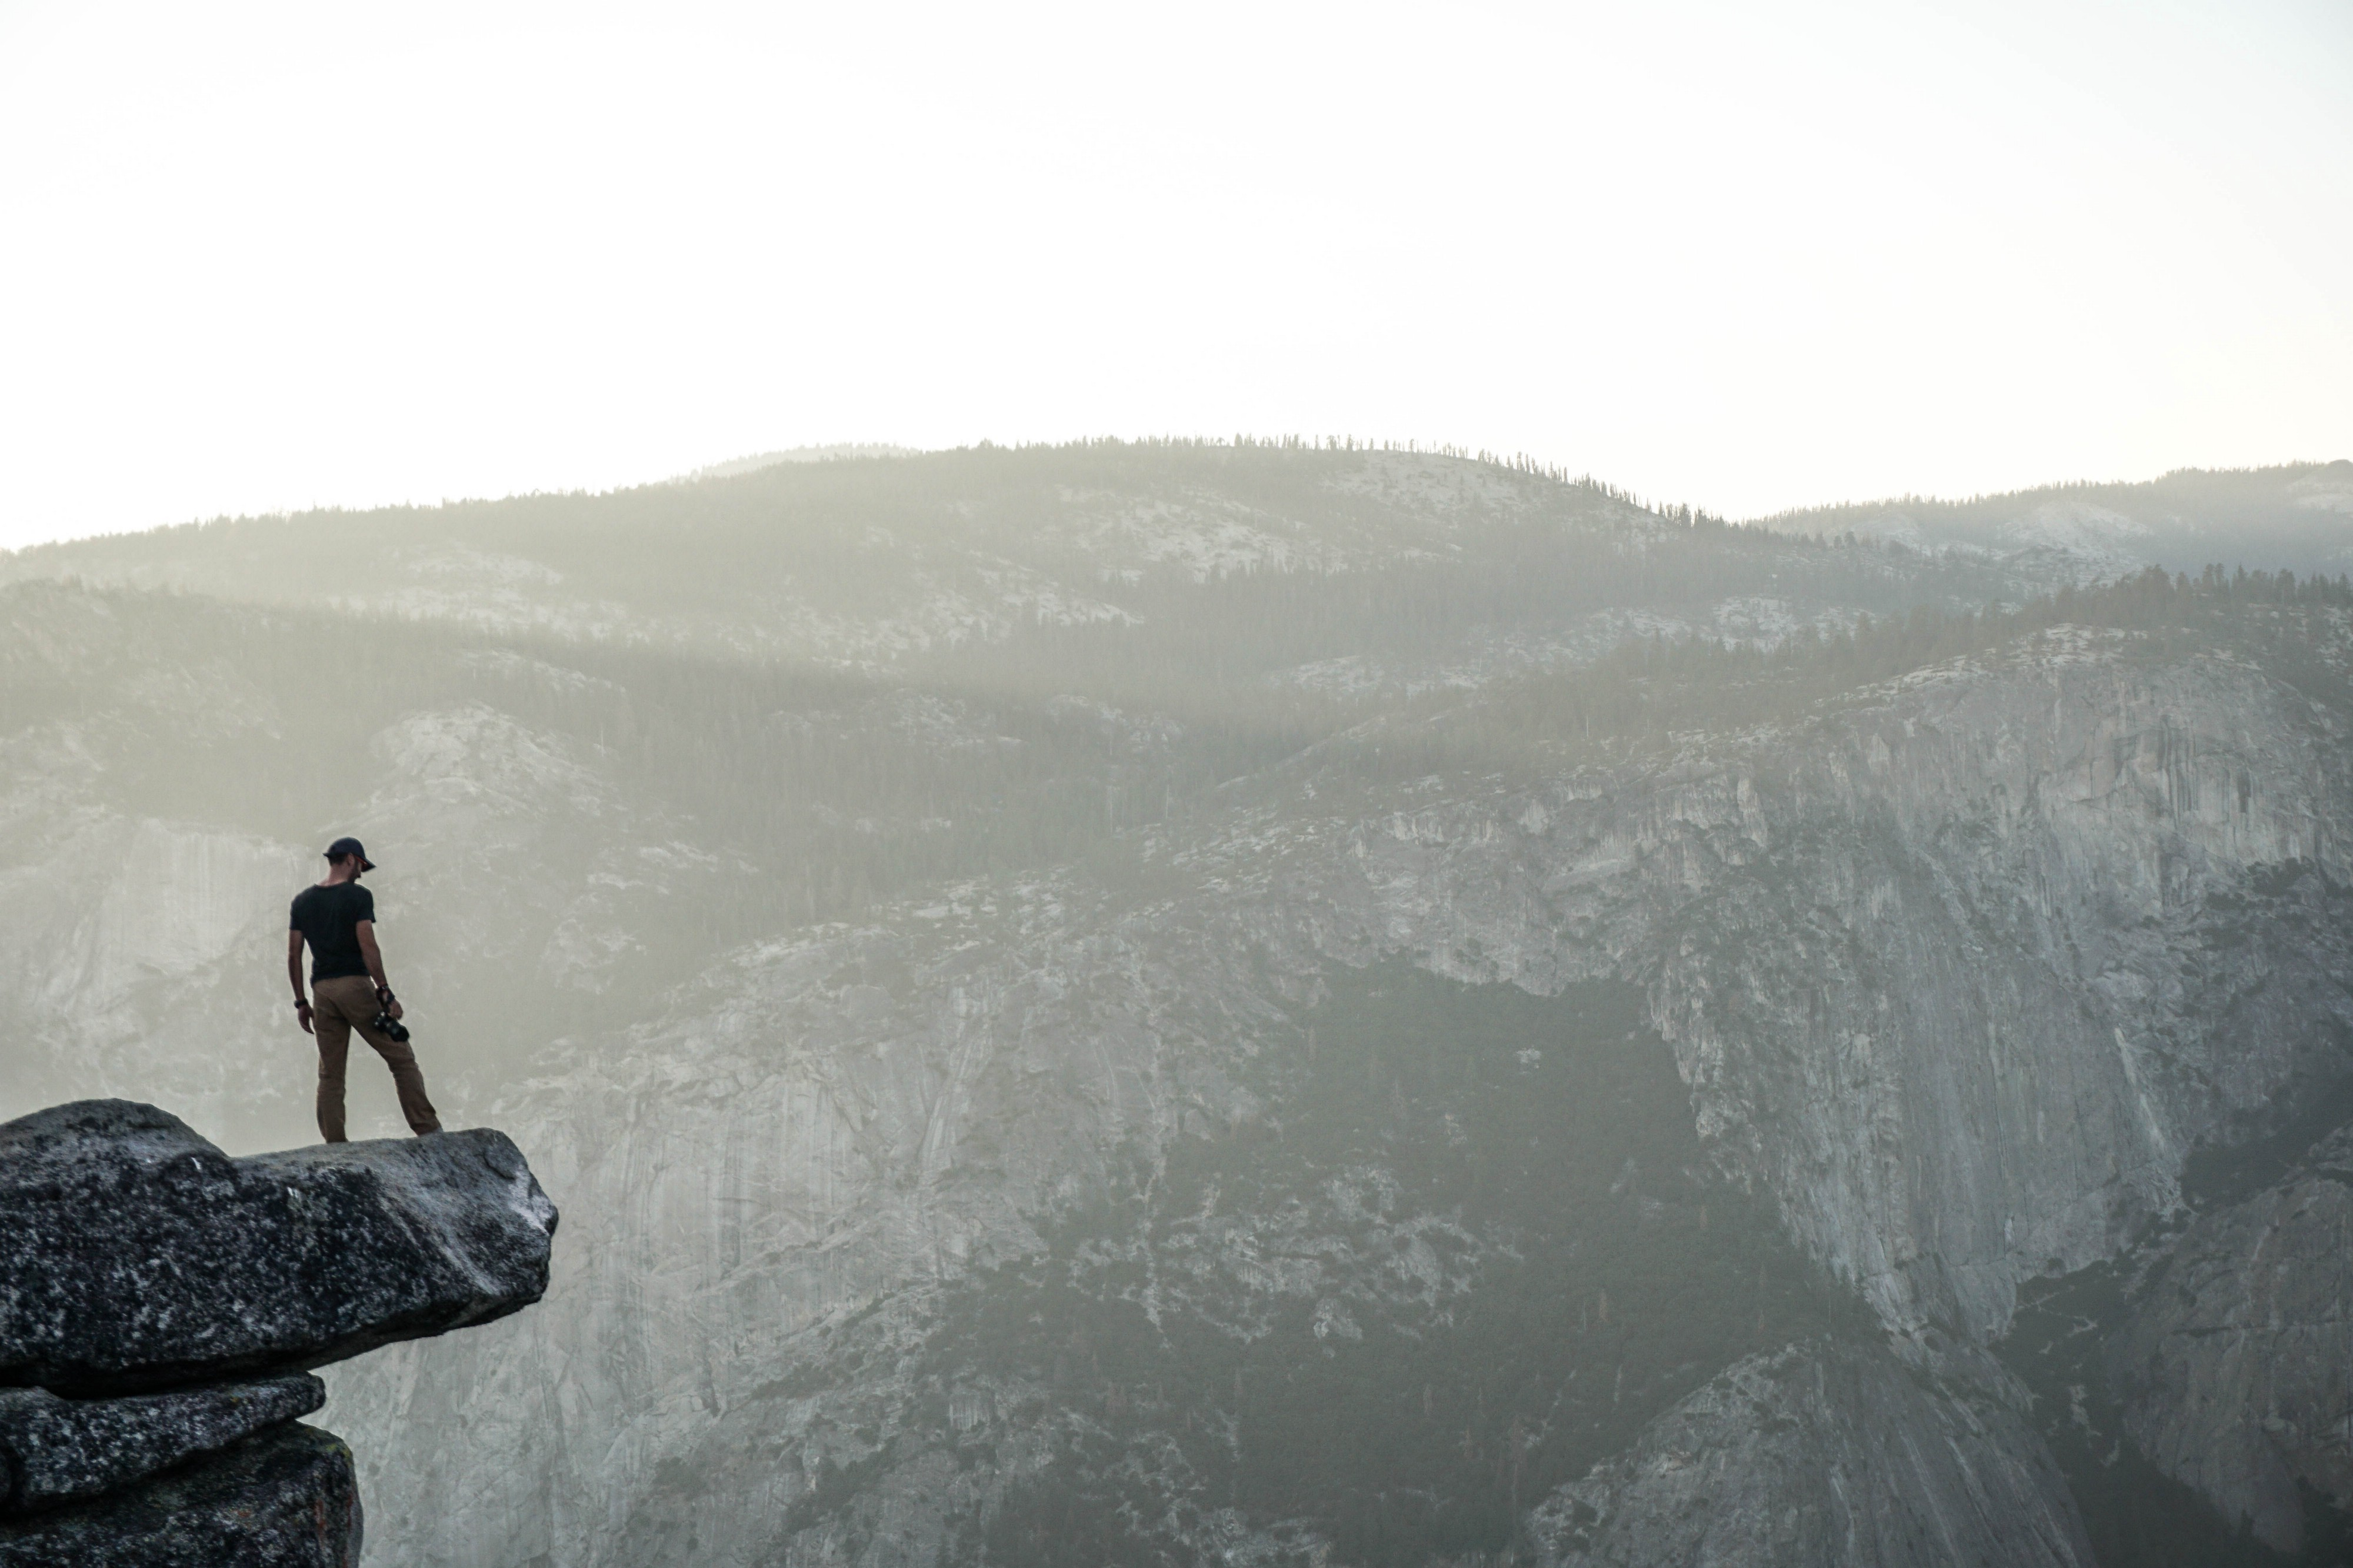 On the Edge of the Cliff: How to Perform Under High Pressure